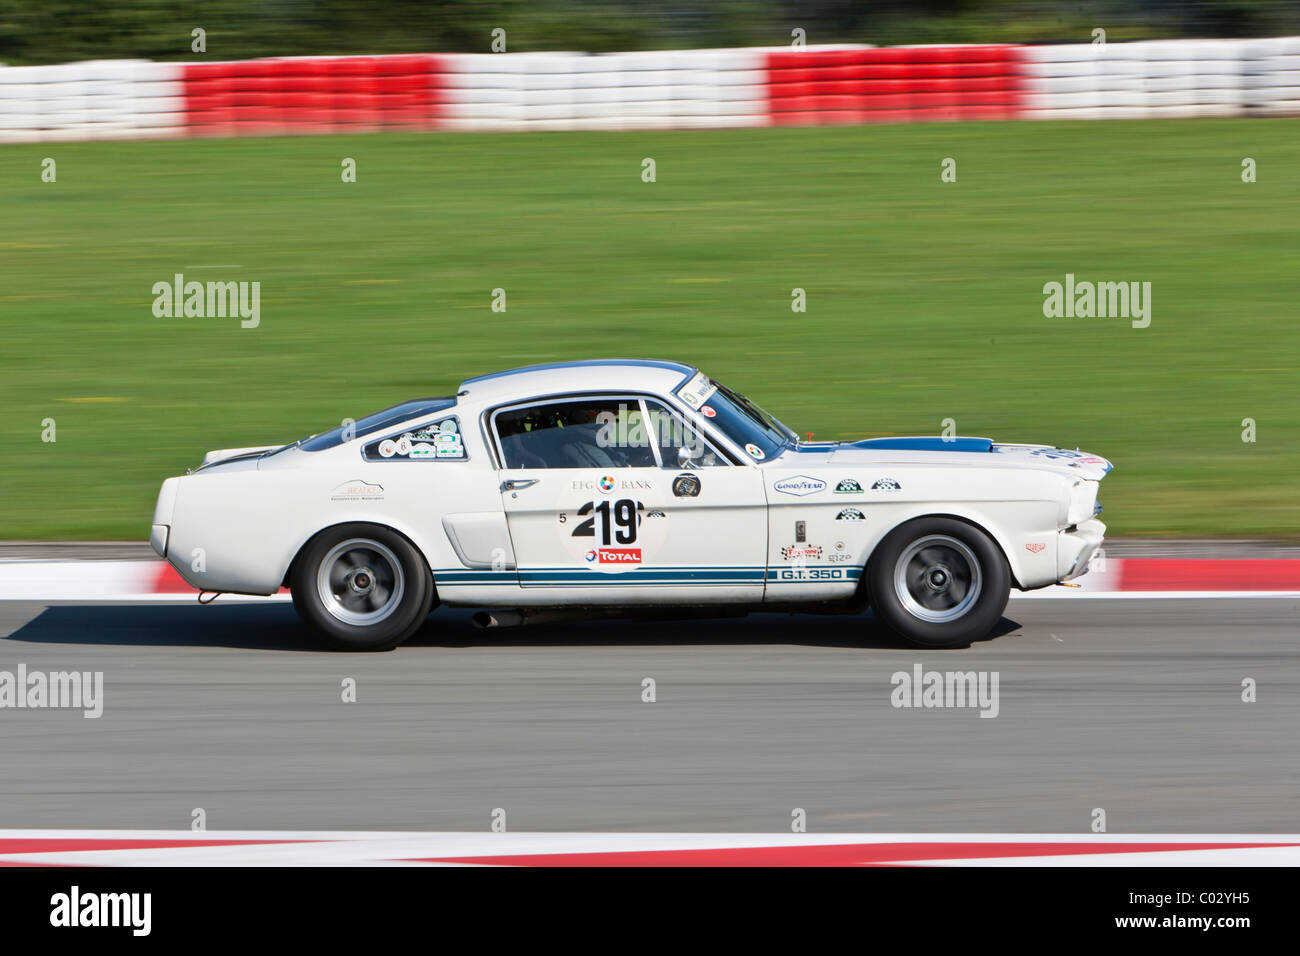 Race of post-war racing cars, Mustang, at the Oldtimer Grand Prix ...